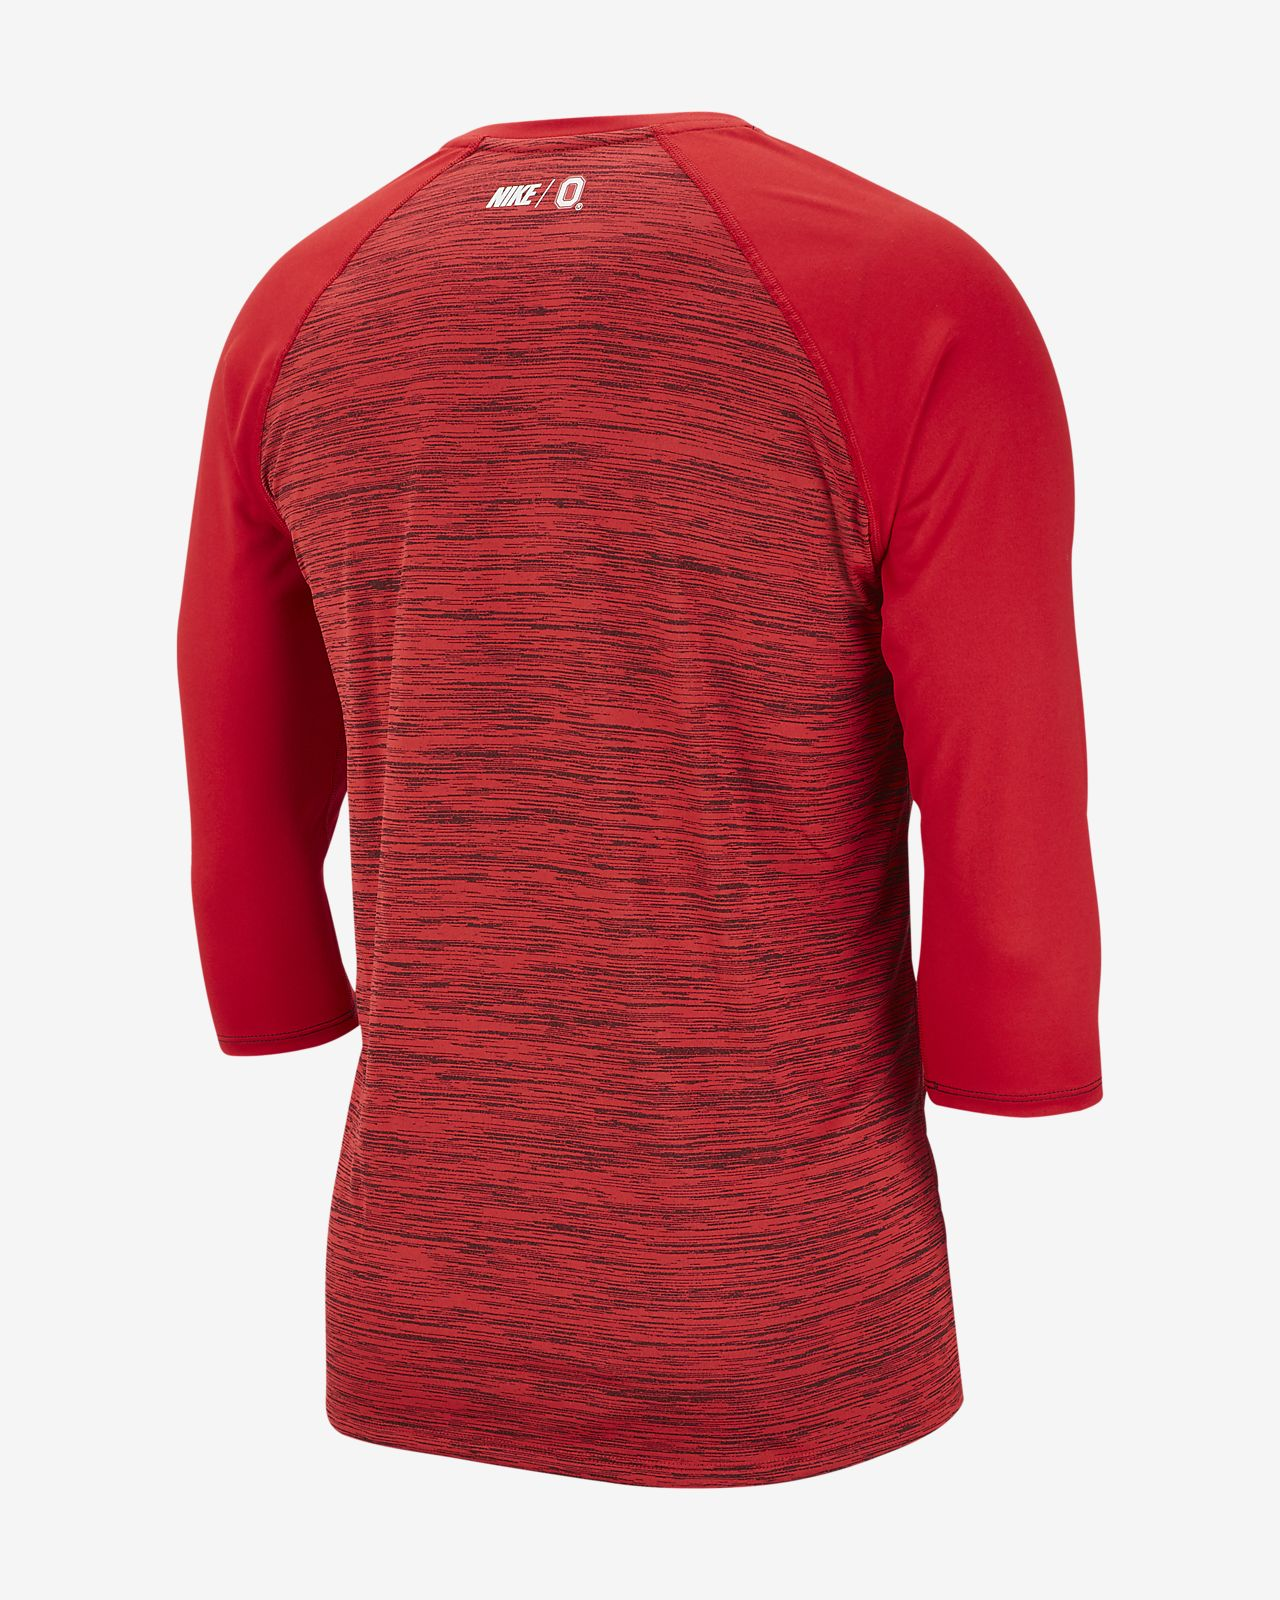 dbc0a5dad Nike College Dri-FIT Legend (Ohio State) Men s 3 4-Sleeve Top. Nike.com